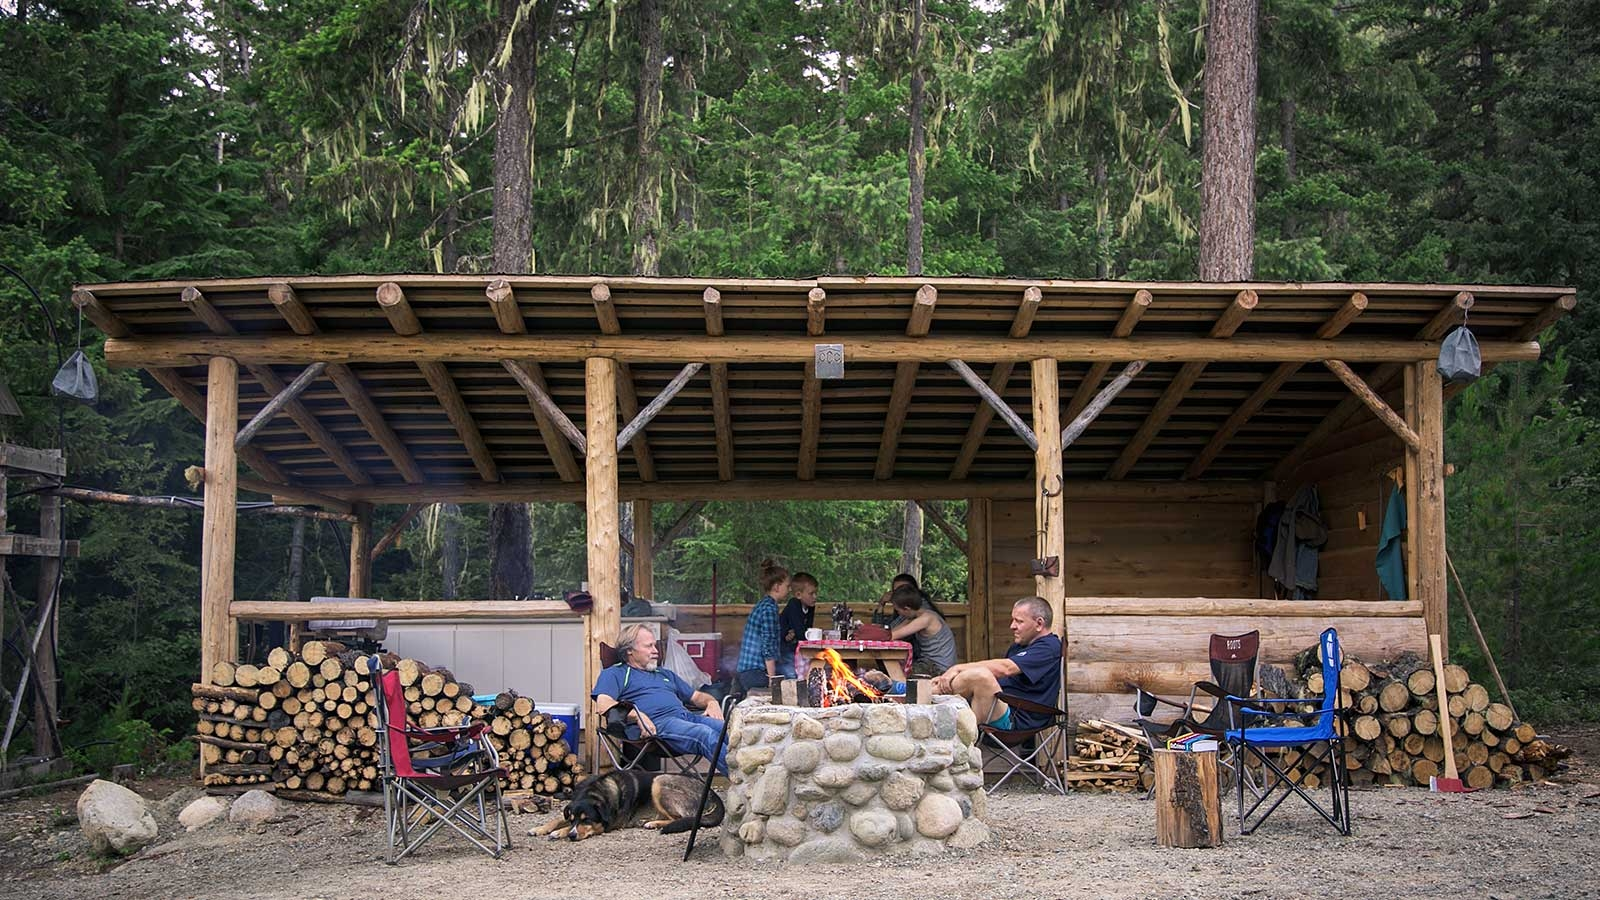 group of people relaxing at a camp fire in front of a shelter